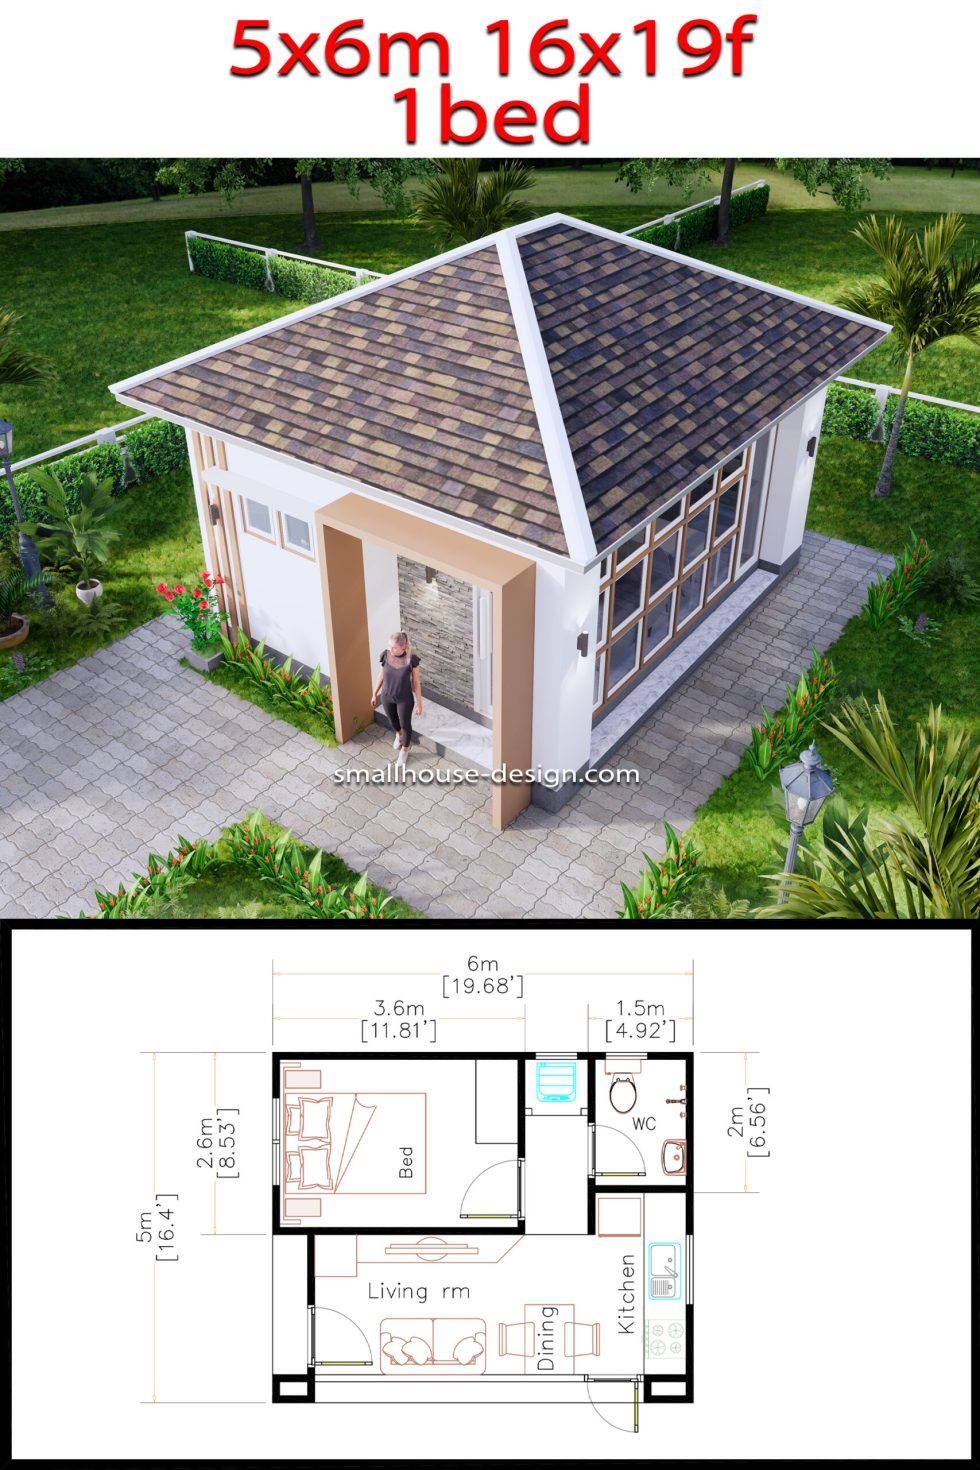 Small House Plans 5x6 M Hip Roof One Bedroom Full Pdf plans